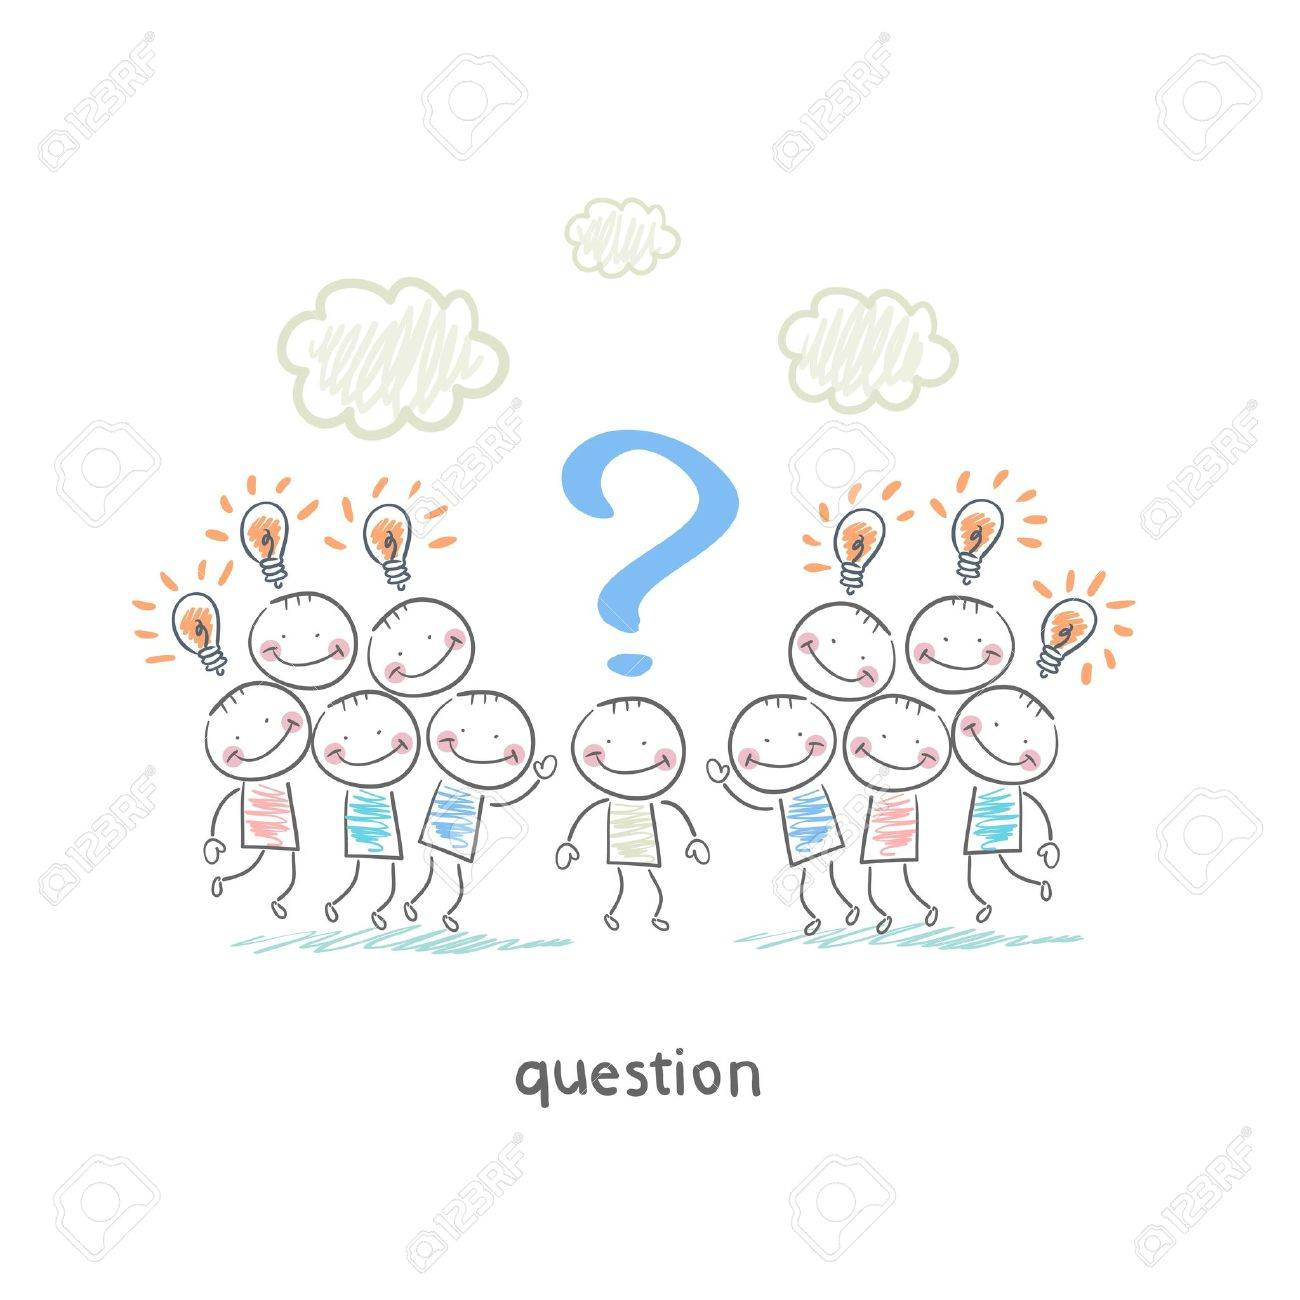 Questions Stock Vector - 18558021